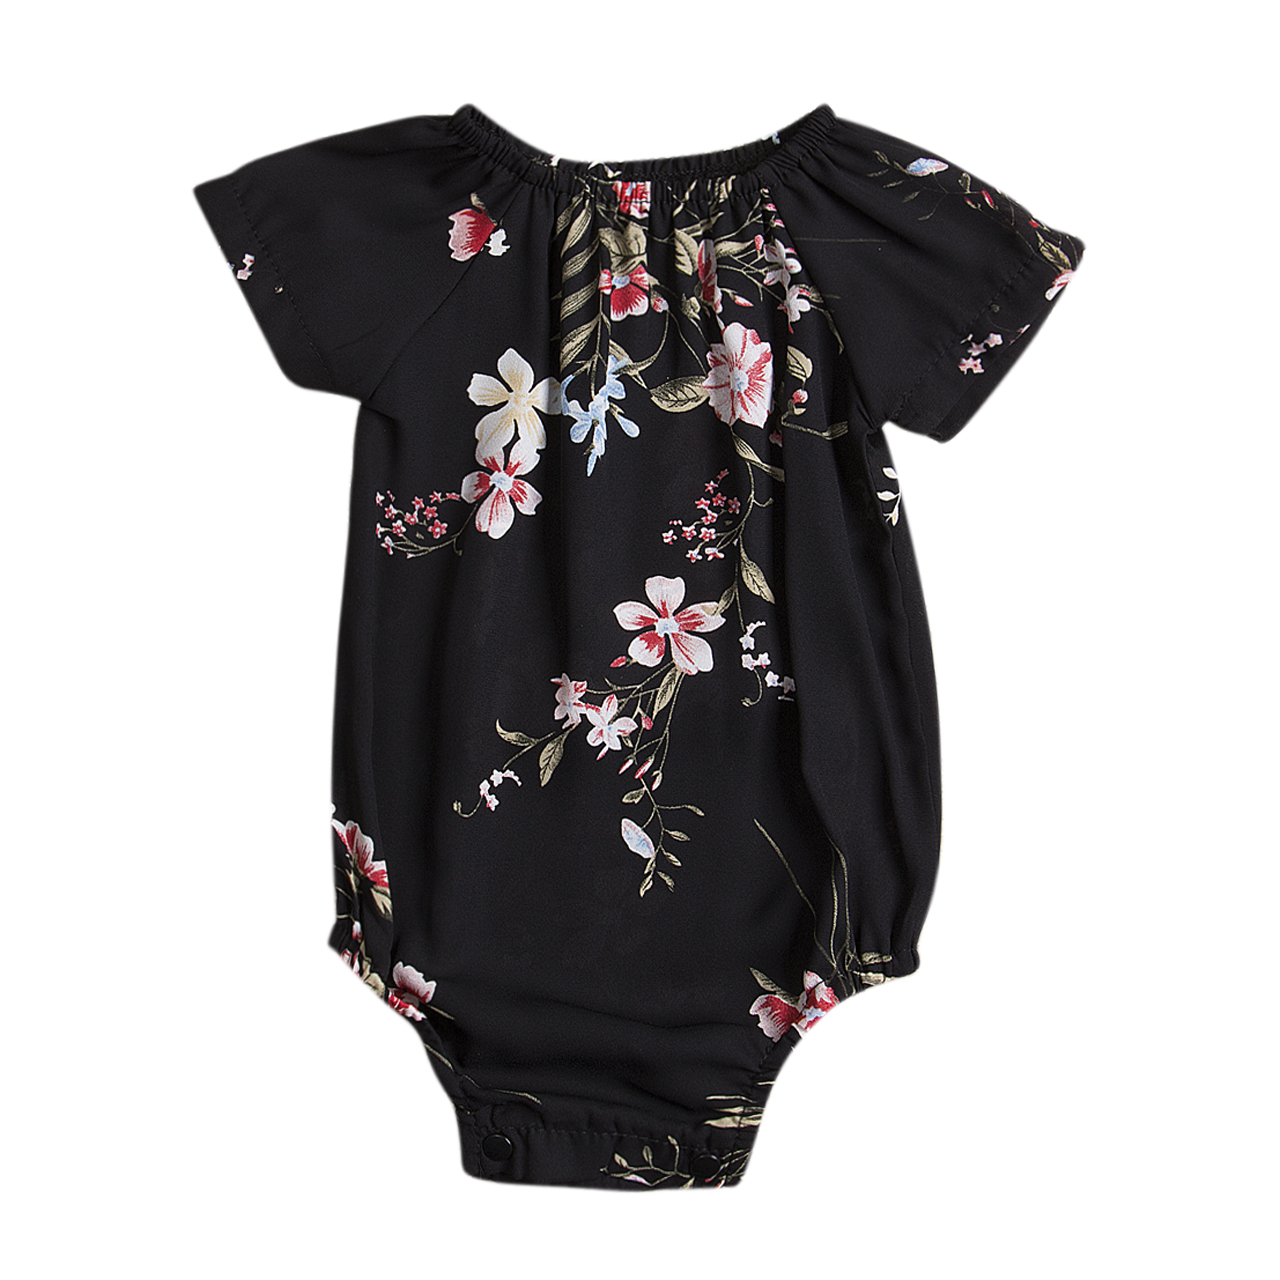 Newborn Infant Baby Girl Floral Romper Jumpsuit Sunsuit Cotton One-Pieces Outfits Girls Summer Clothes